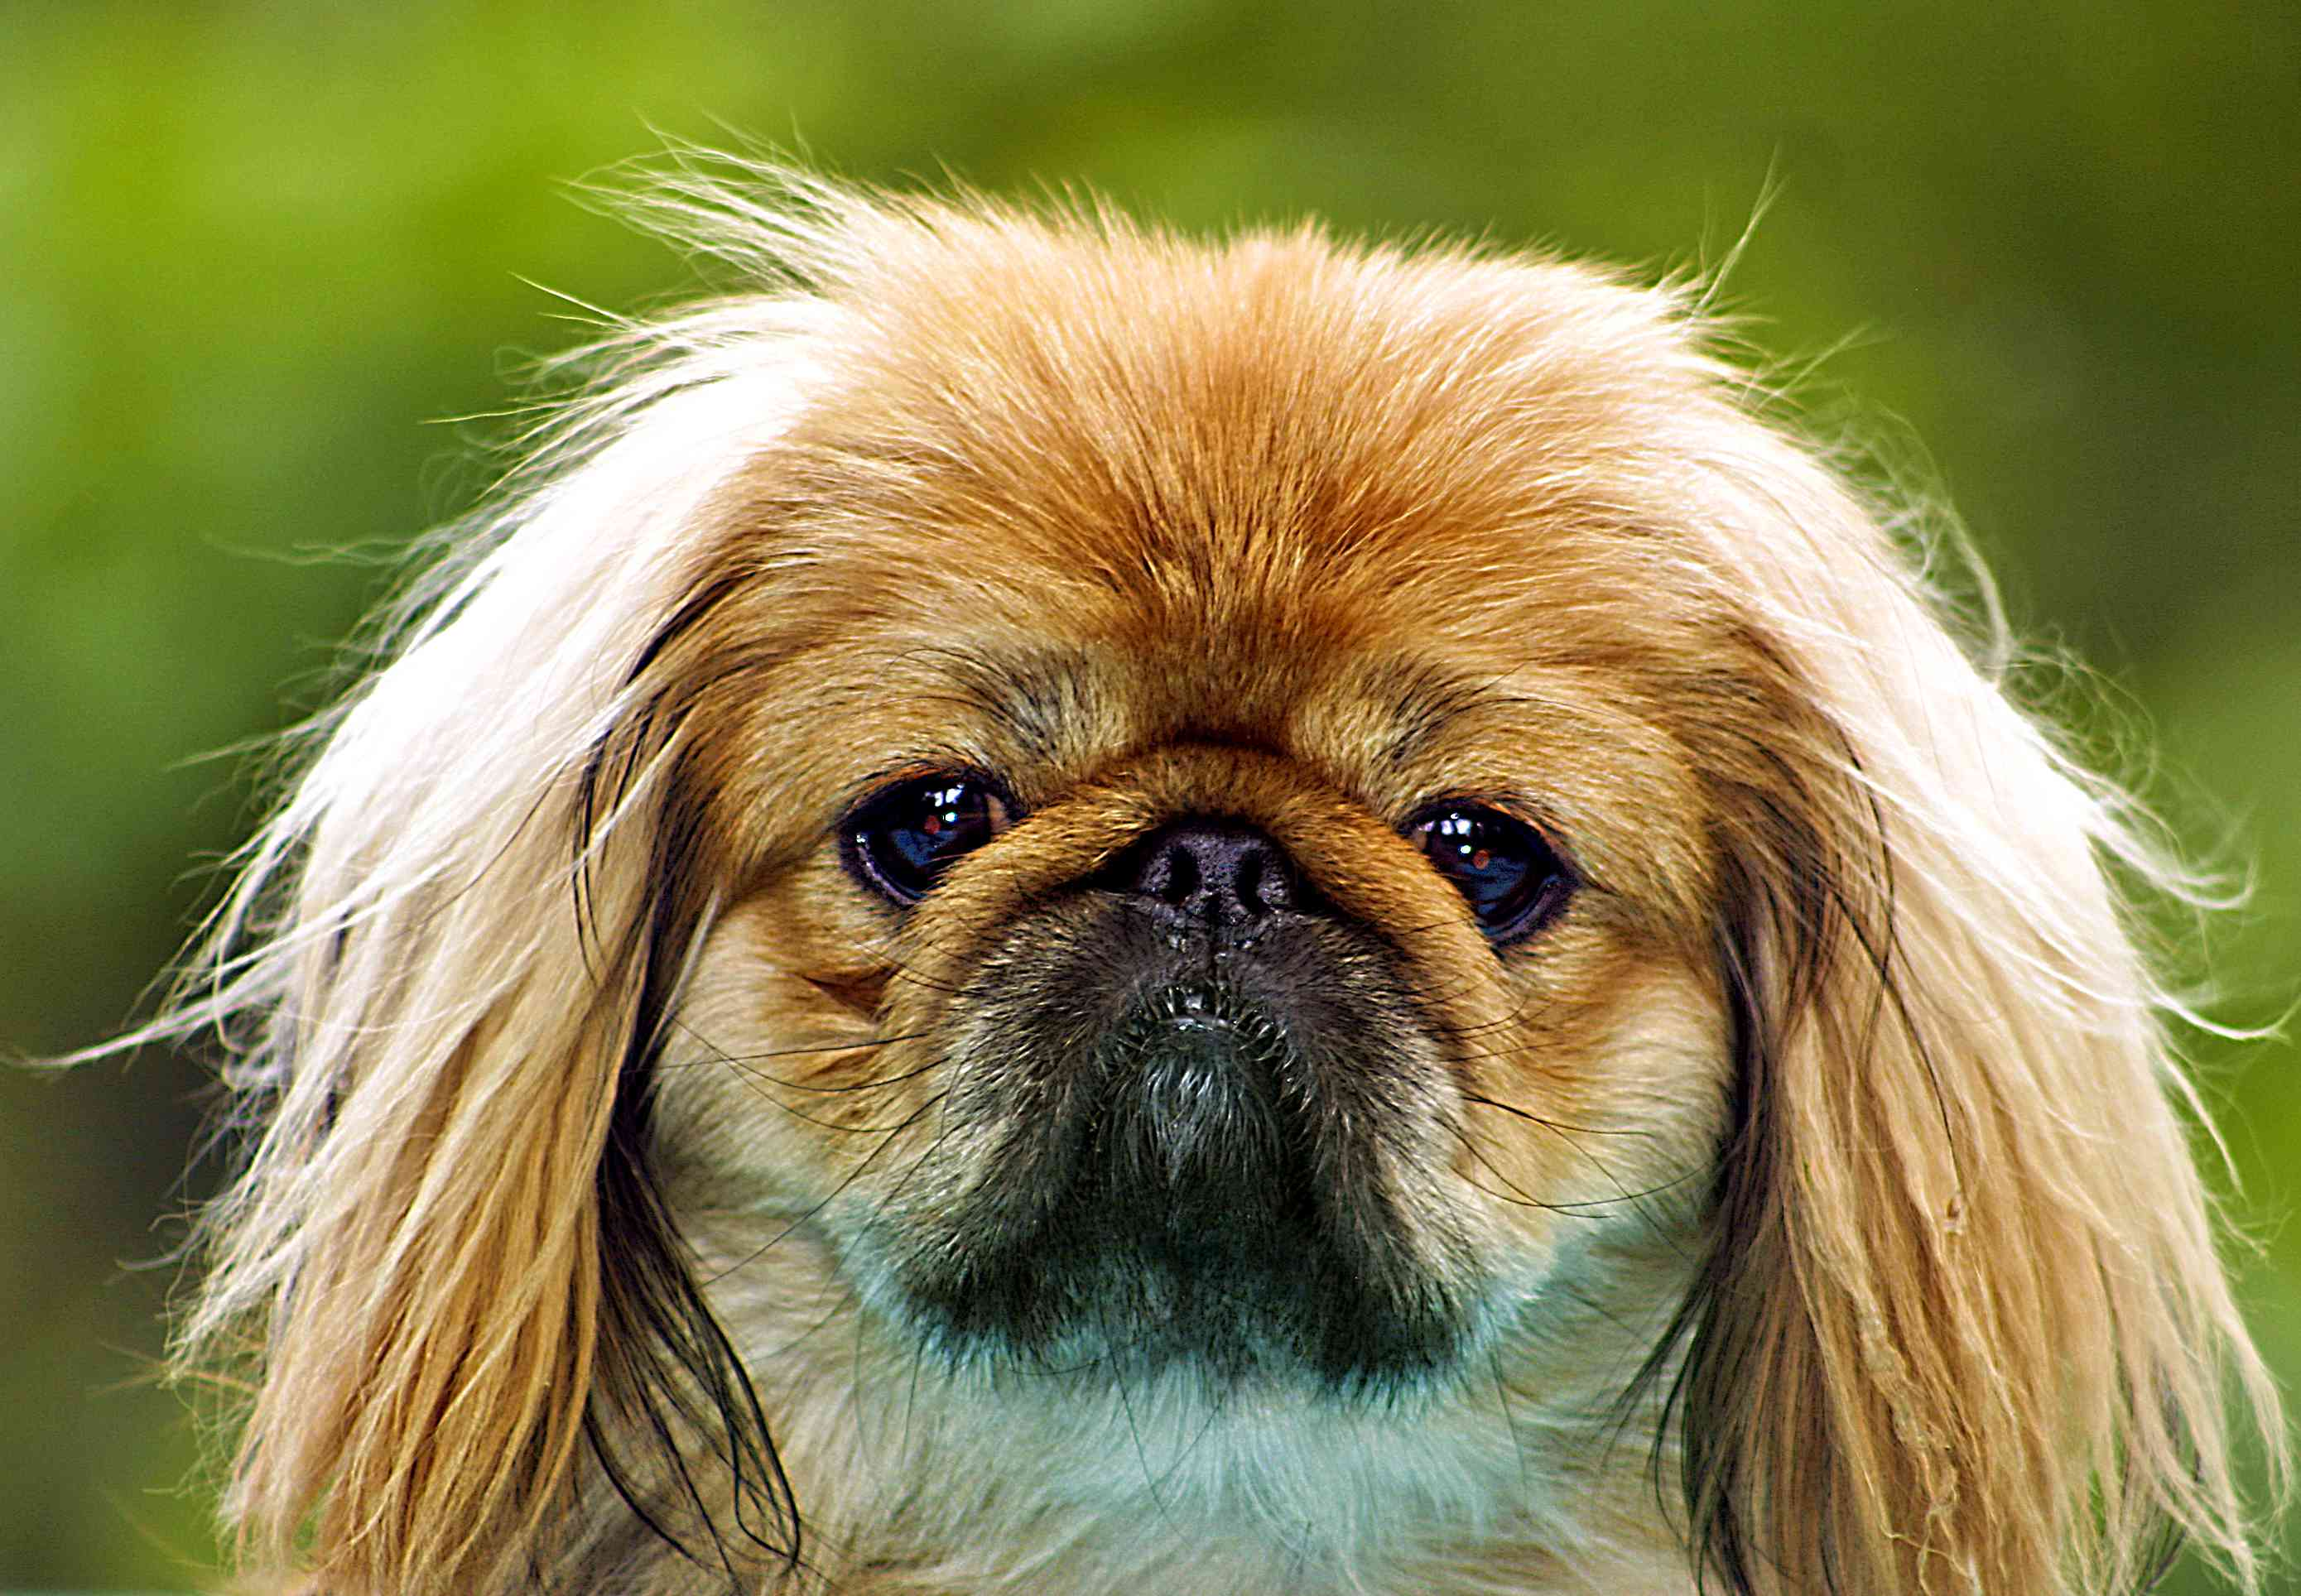 A Pekingese dog looking into the camera.